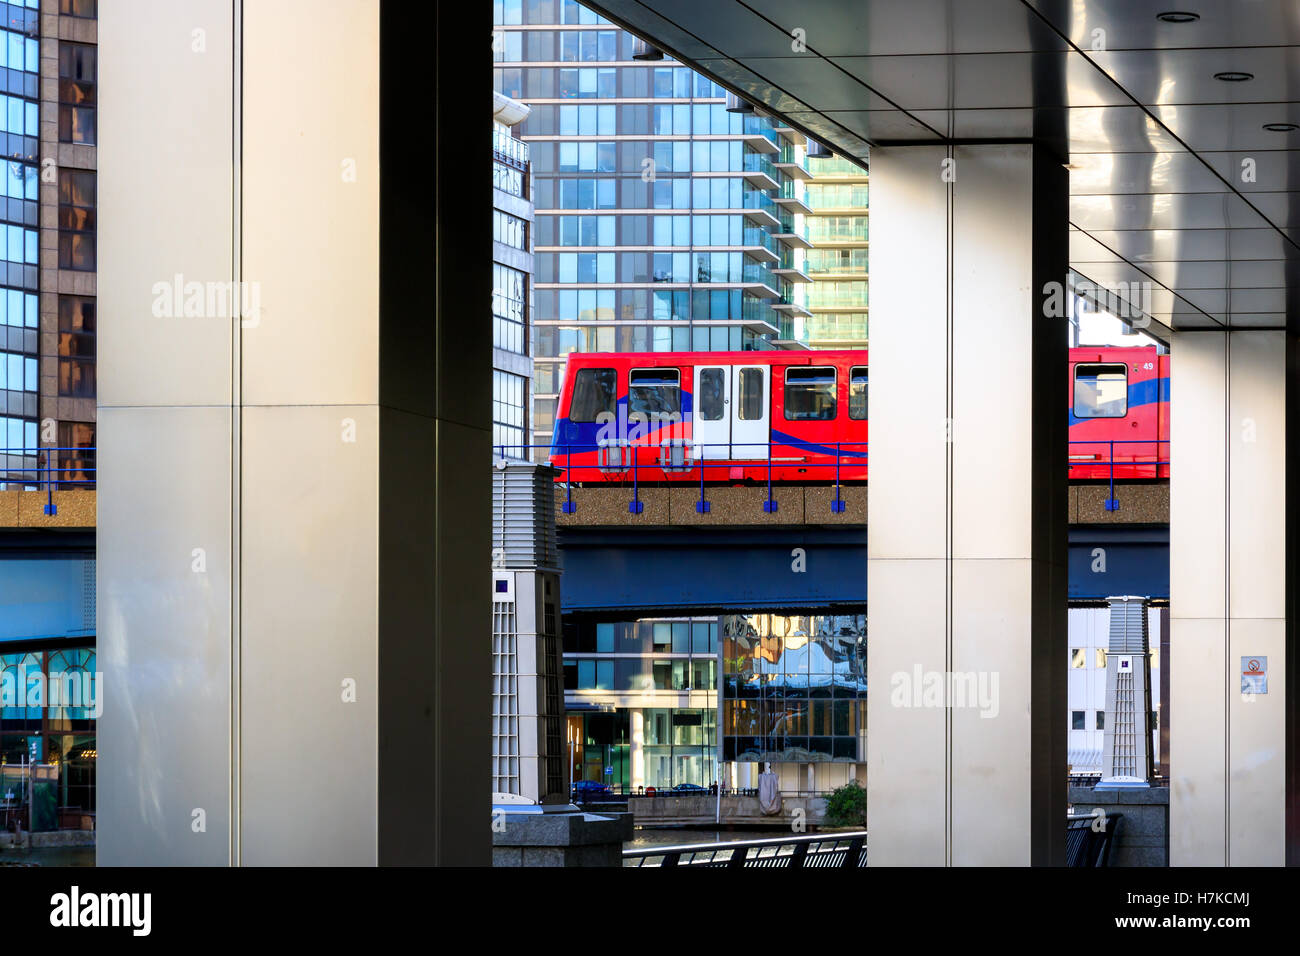 Docklands Light Railway in Canary Wharf, financial district in London - Stock Image